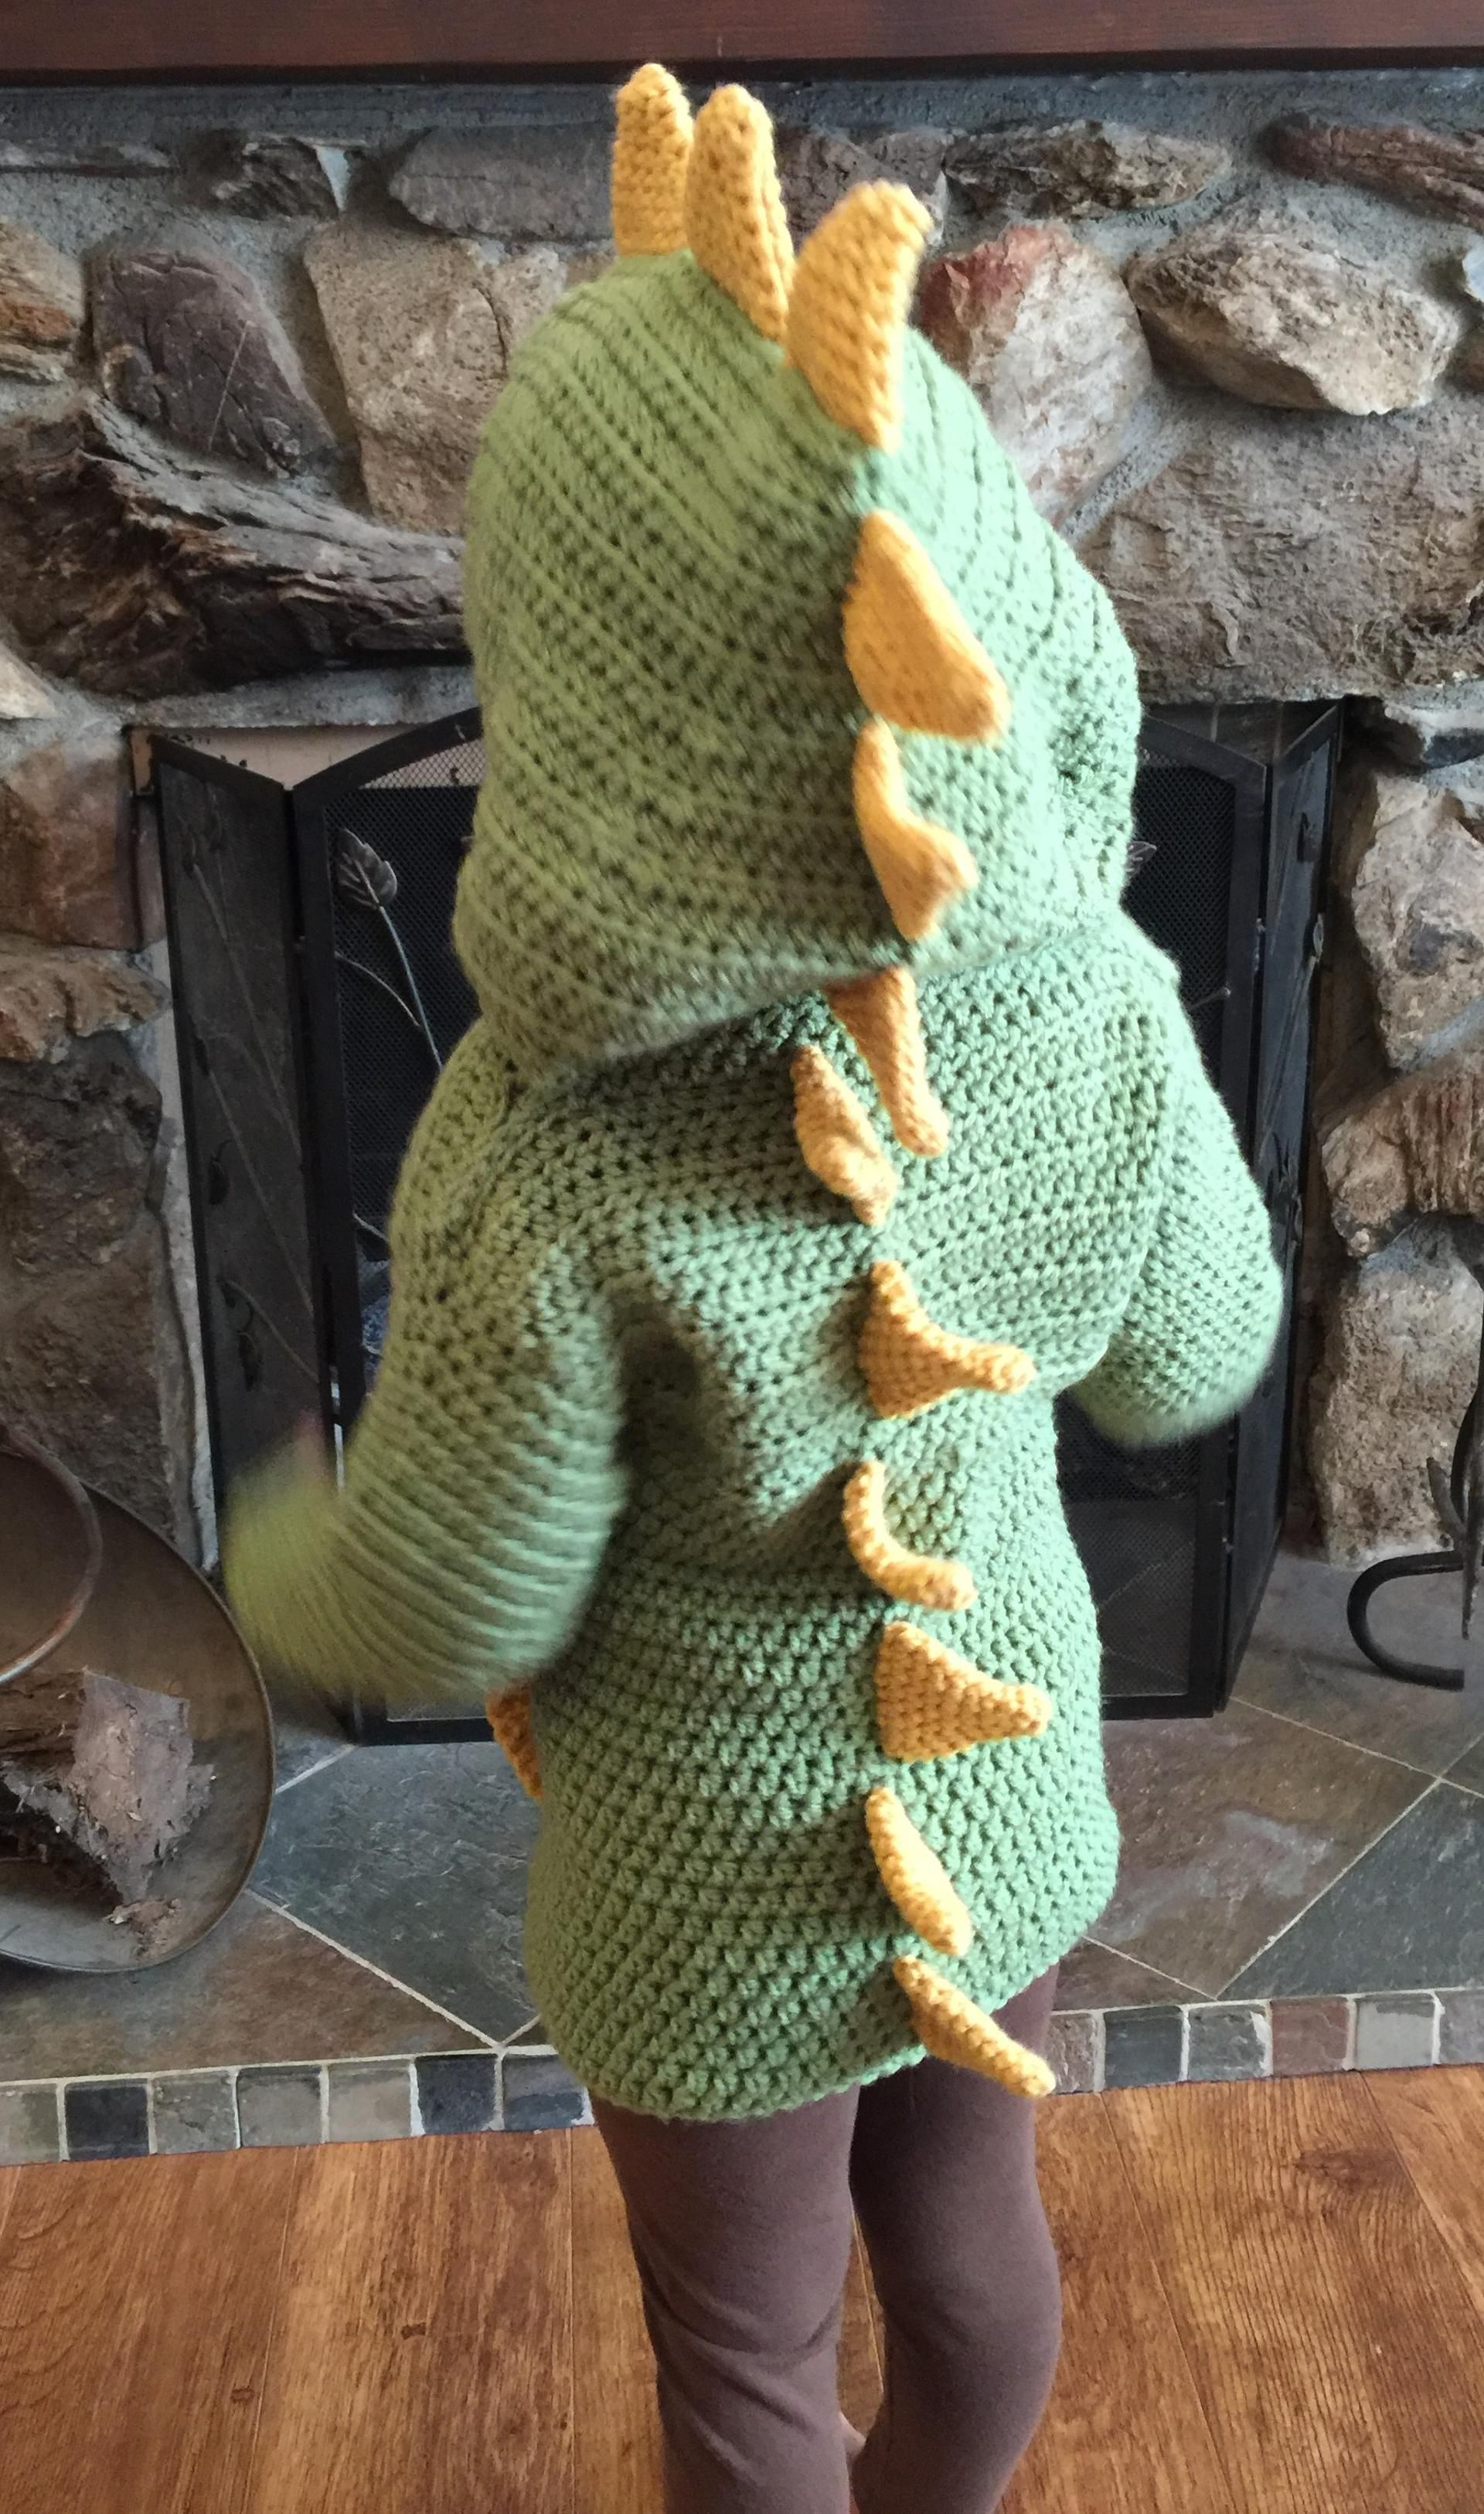 3T/4T Dino/ Dinosaur Hooded Sweater with Spikes | Craftsy | Crochet ...